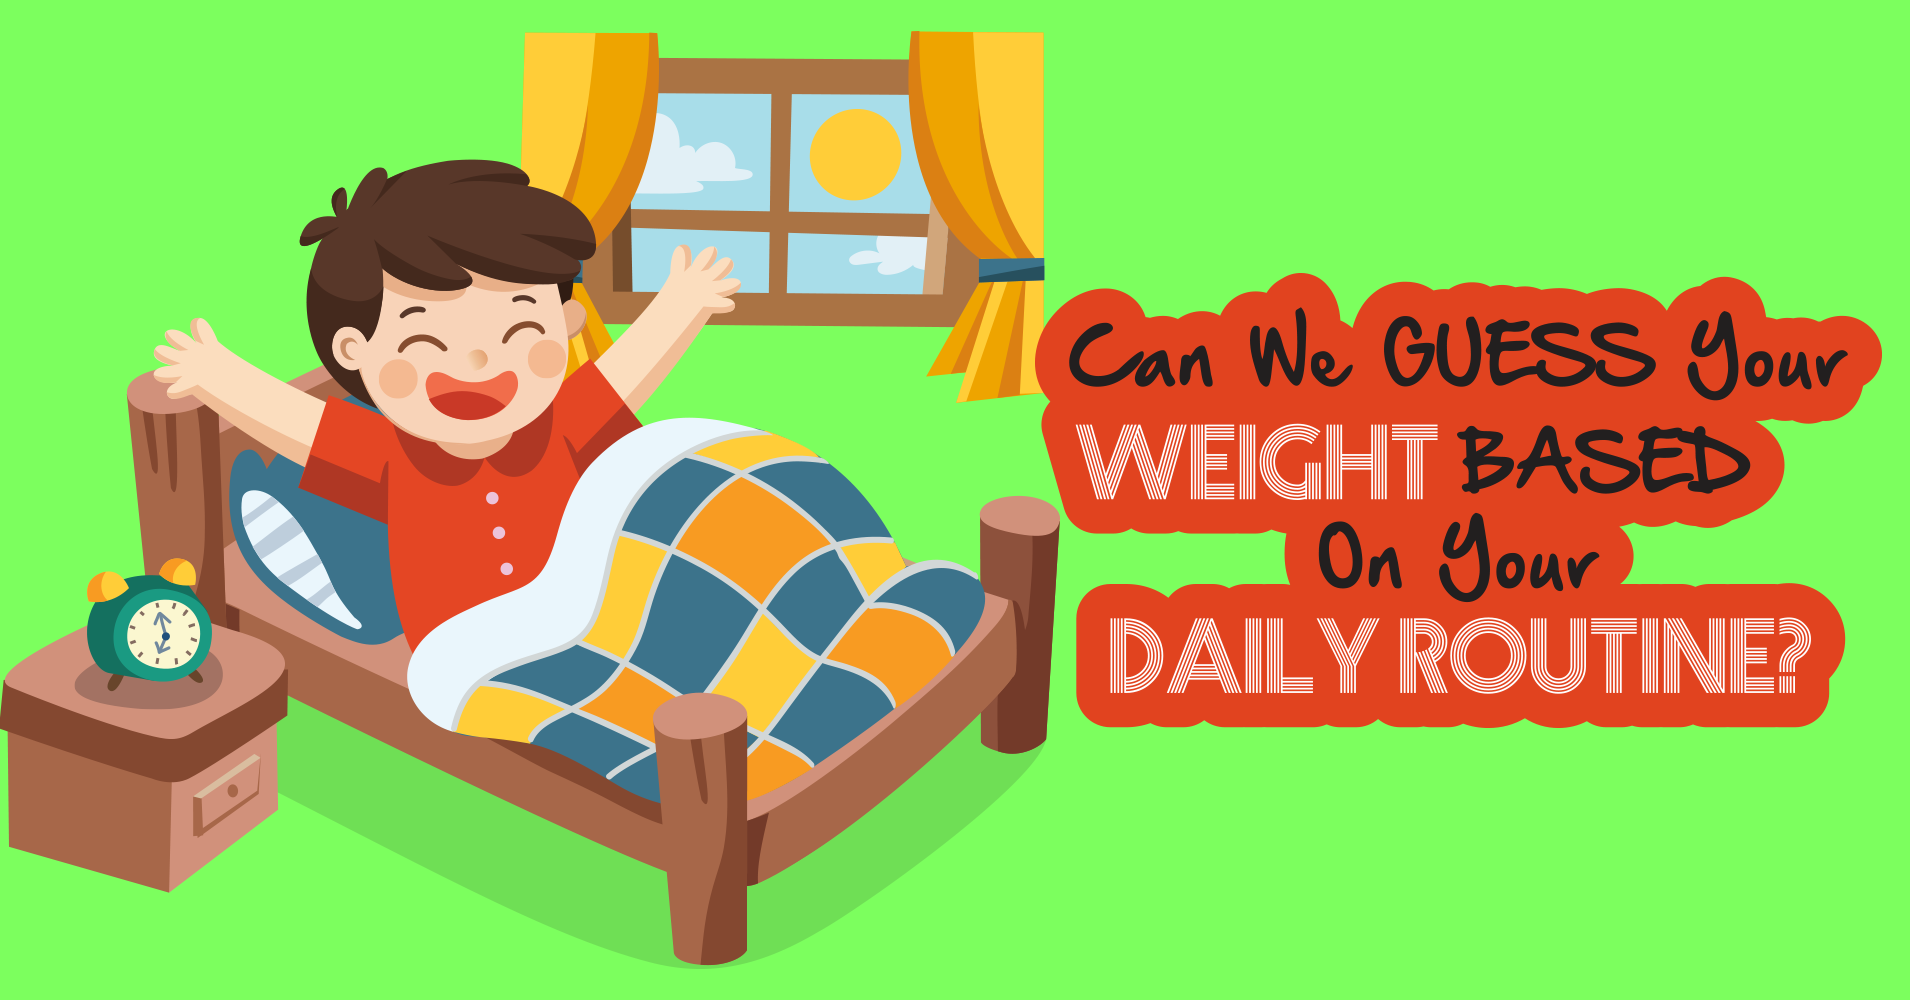 Can We Guess Your Weight Based On Your Daily Routine? - Quiz